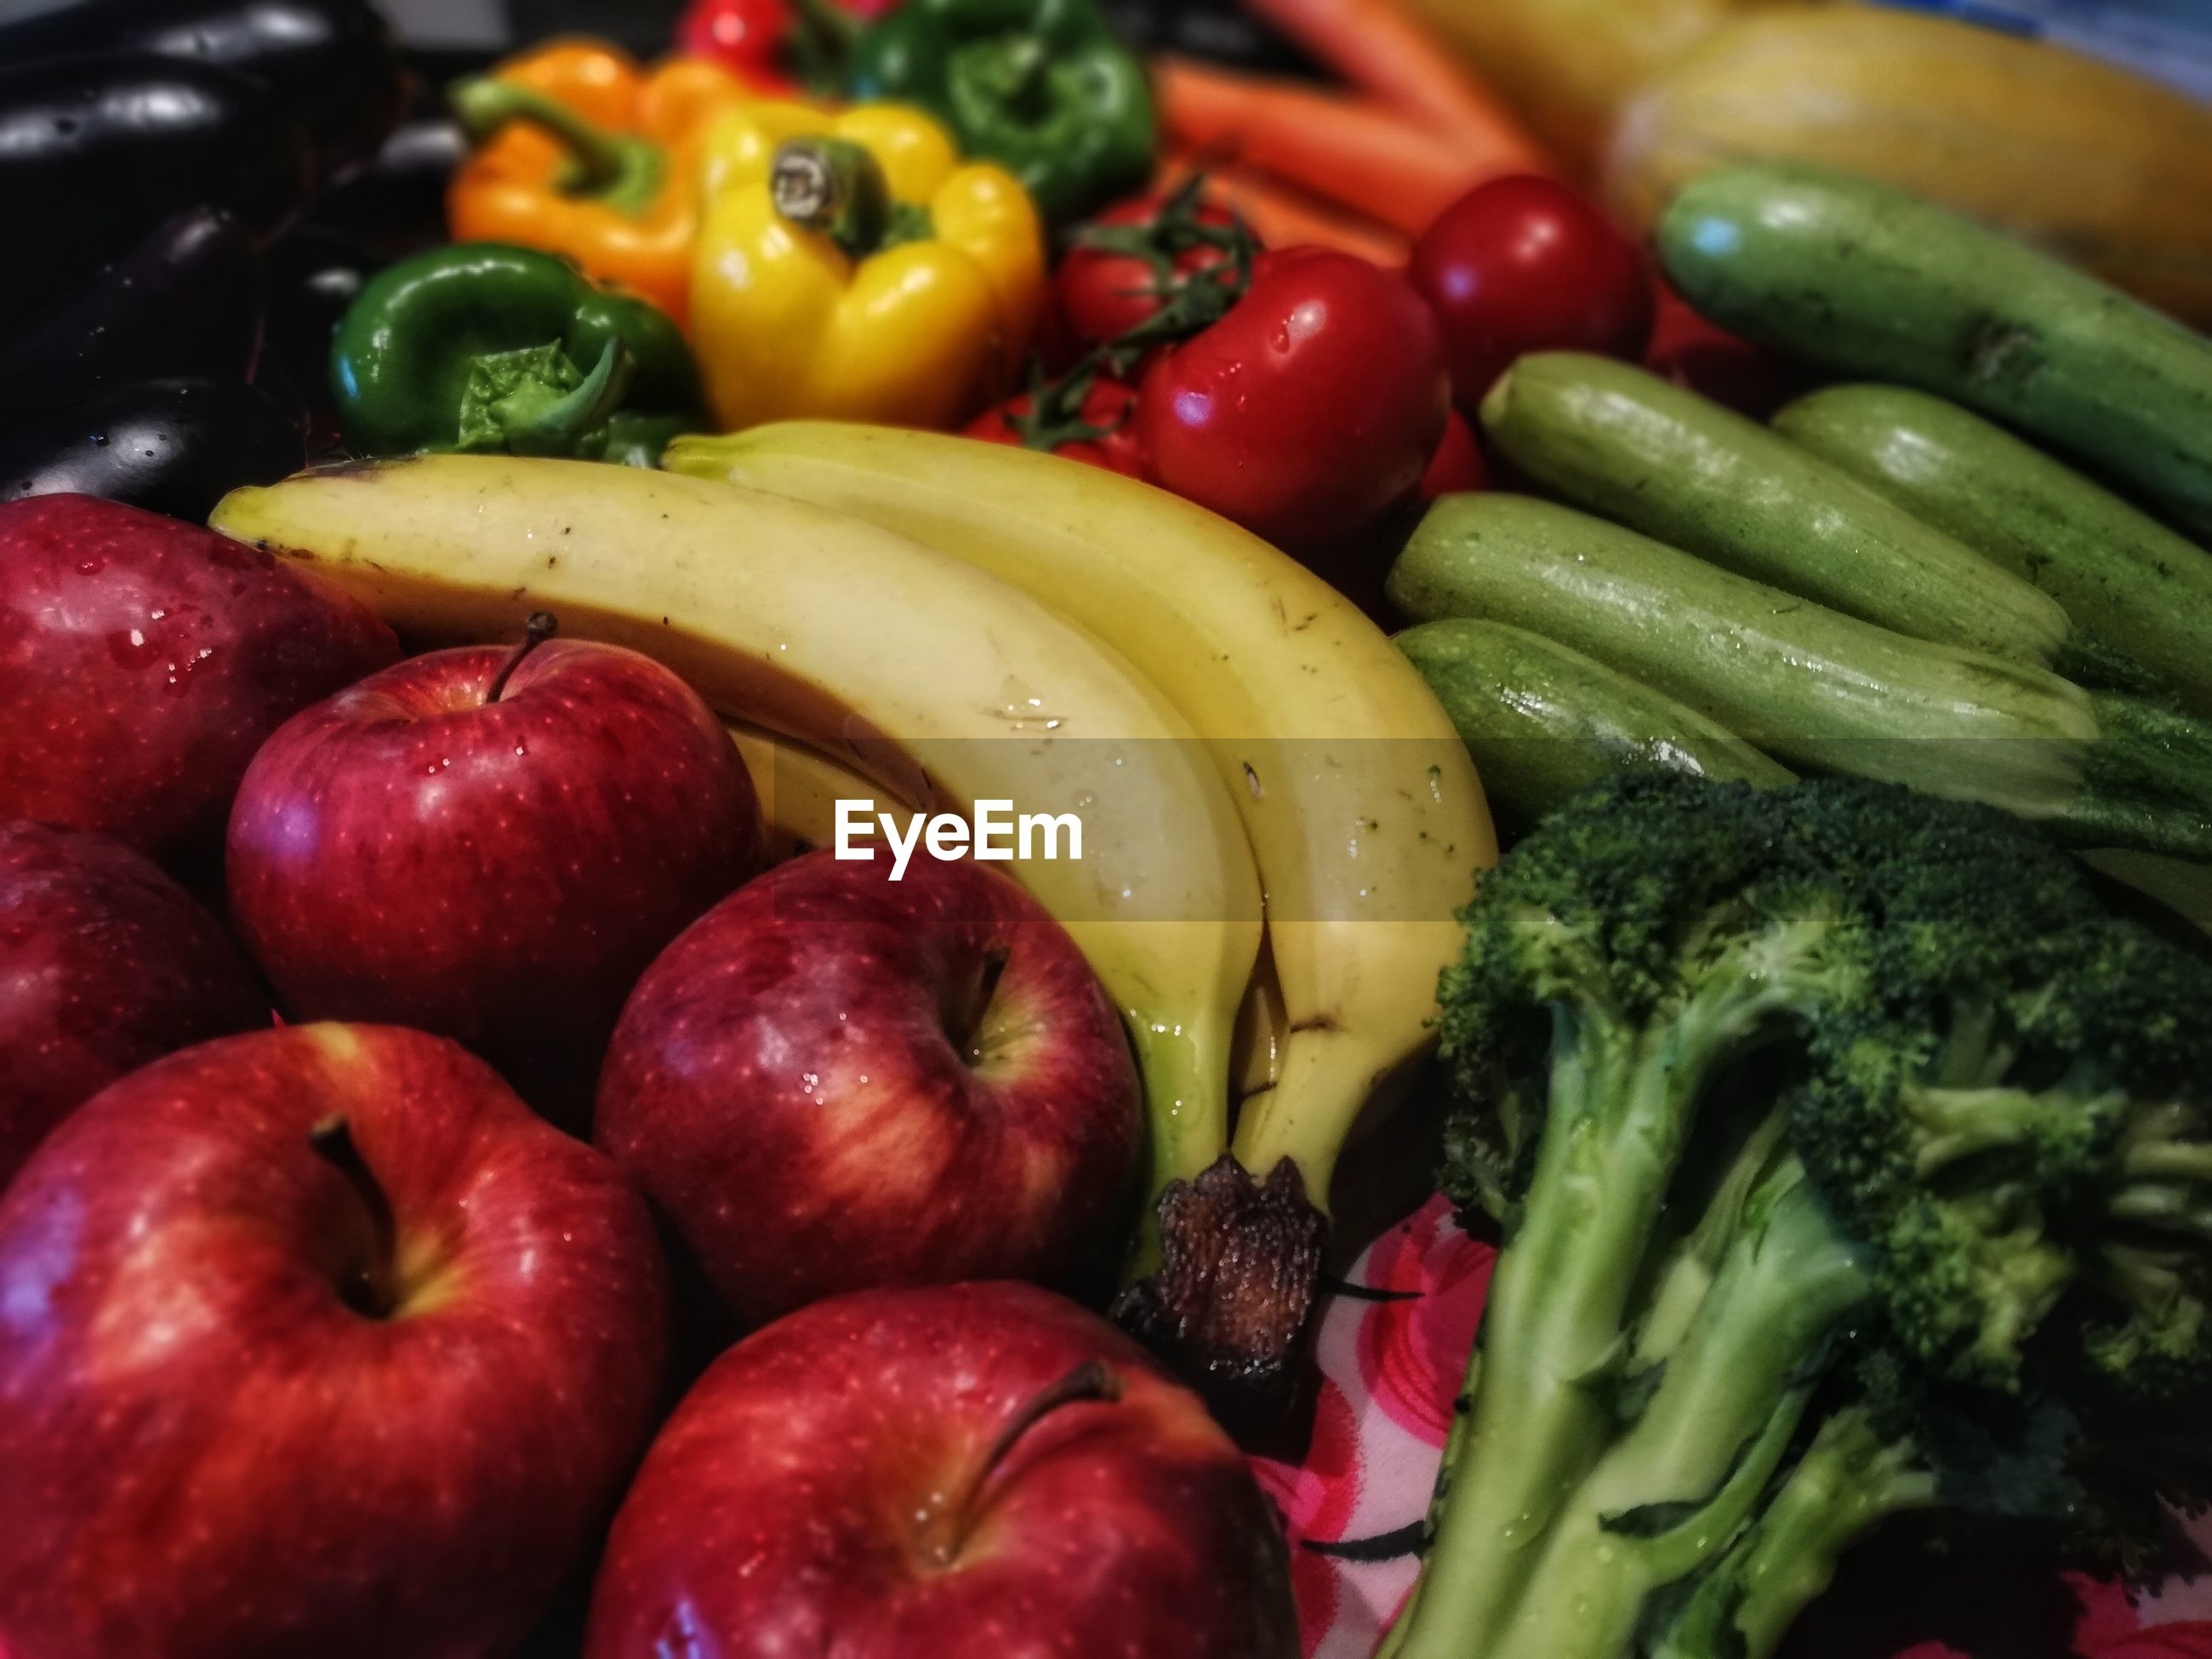 FULL FRAME SHOT OF FRUITS AND TOMATOES